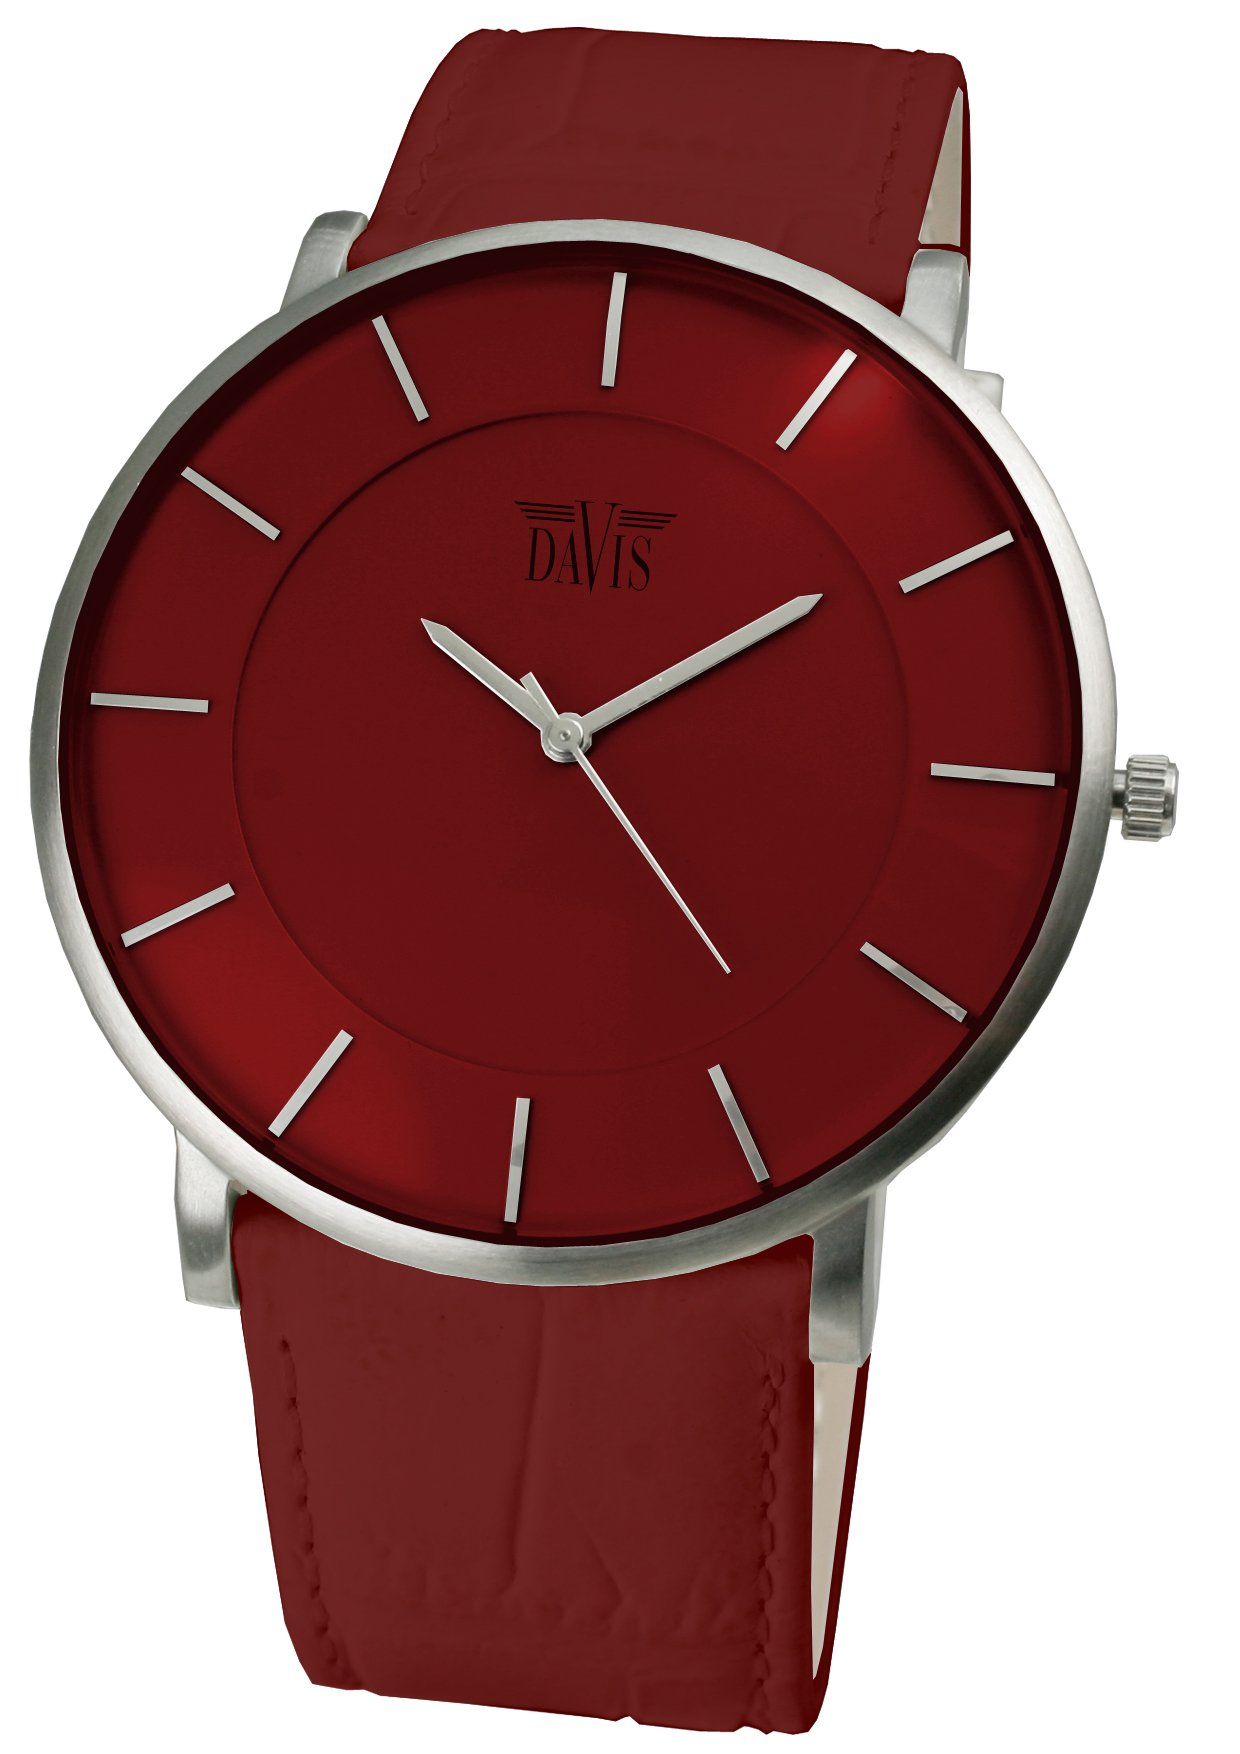 Davis 0912 - Mens Womens Design Ultra Thin Watch Red Dial Red leather Strap